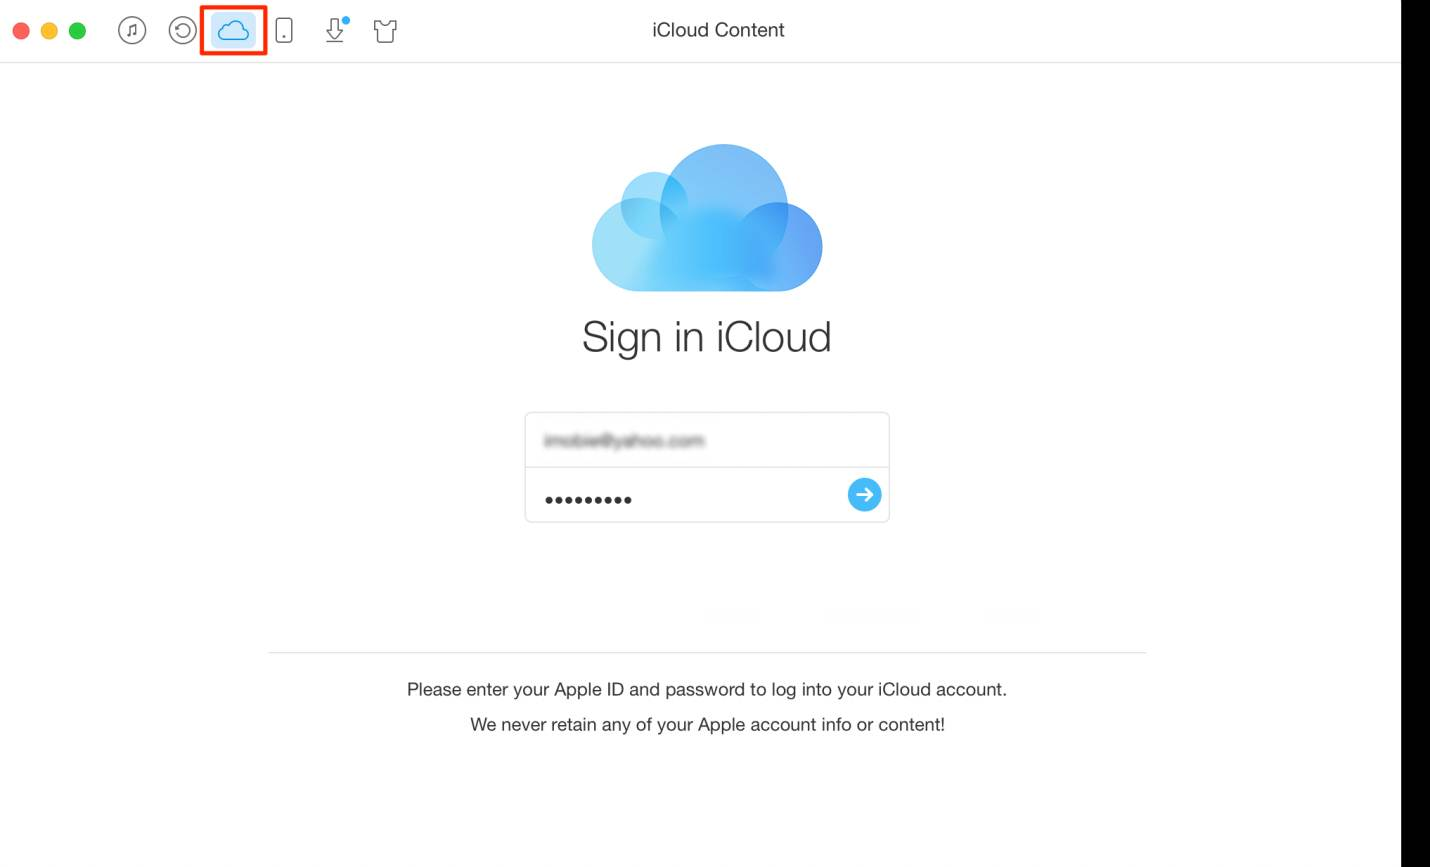 approve-cloud-another-device